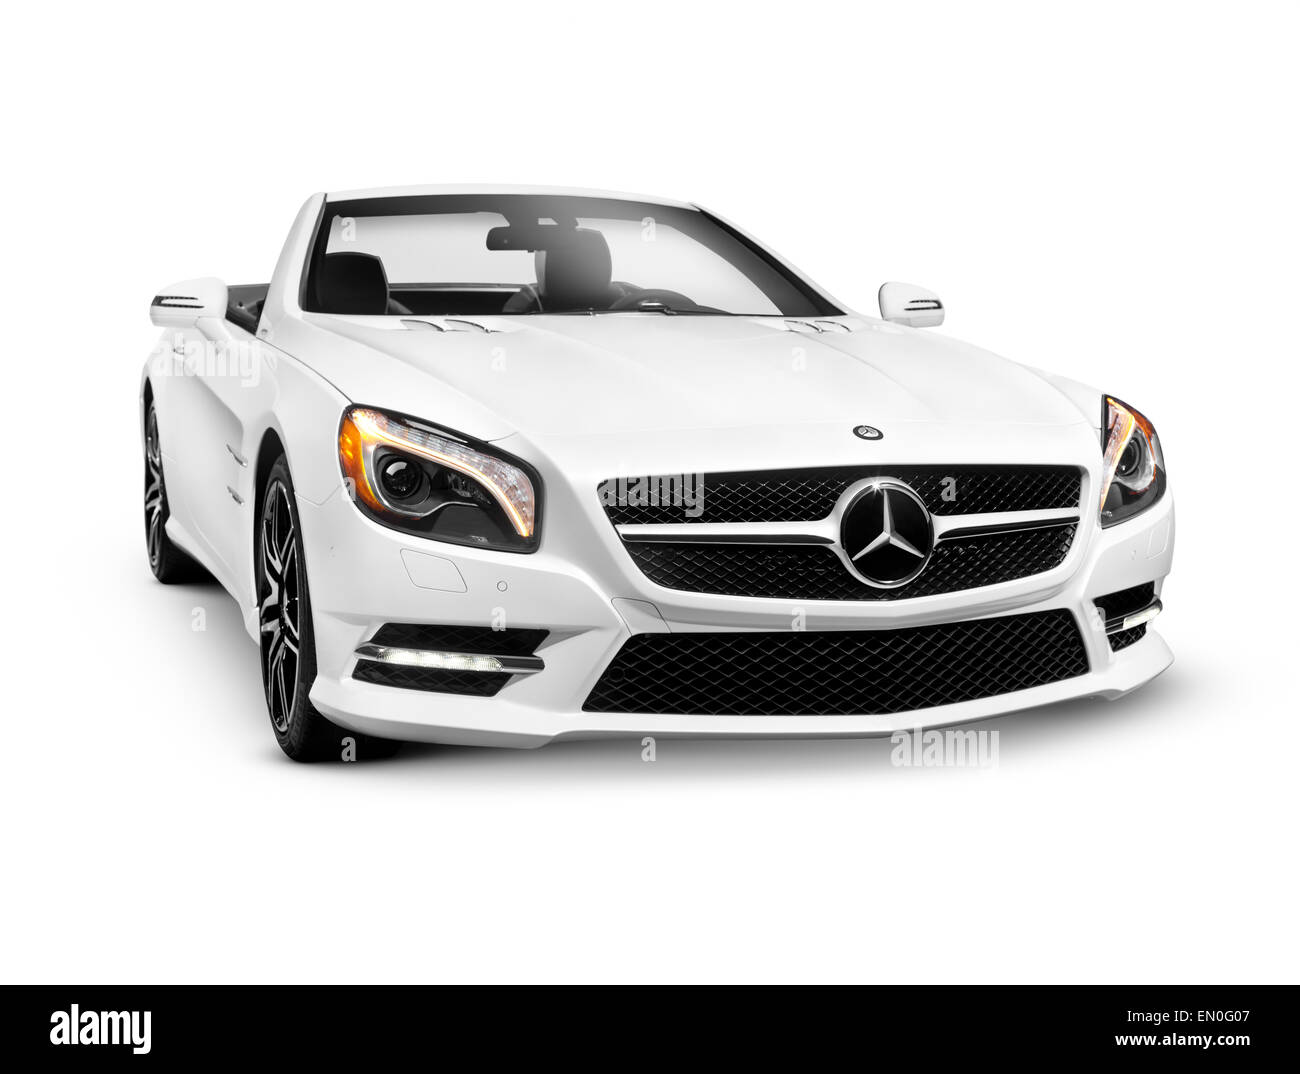 White 2015 Mercedes-Benz SL550 Roadster convertible 2LOOK Edition luxury car isolated on white background with clipping - Stock Image